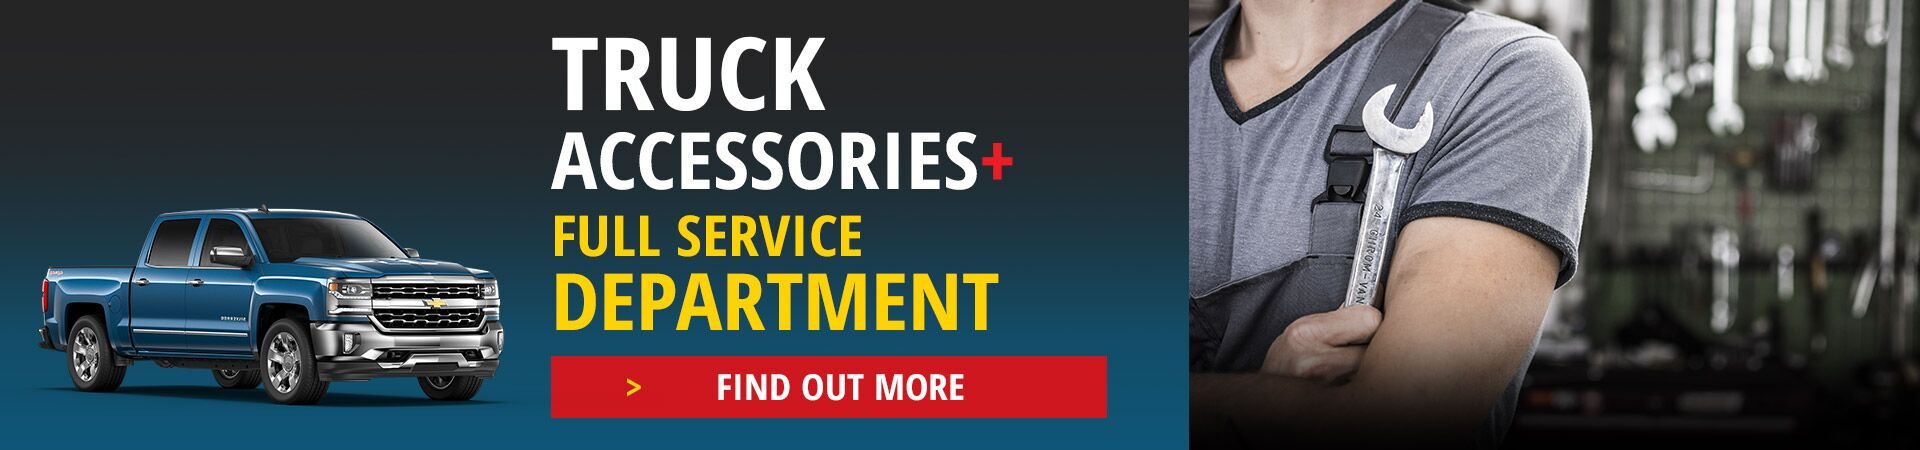 Truck Accessories & Full Service Department